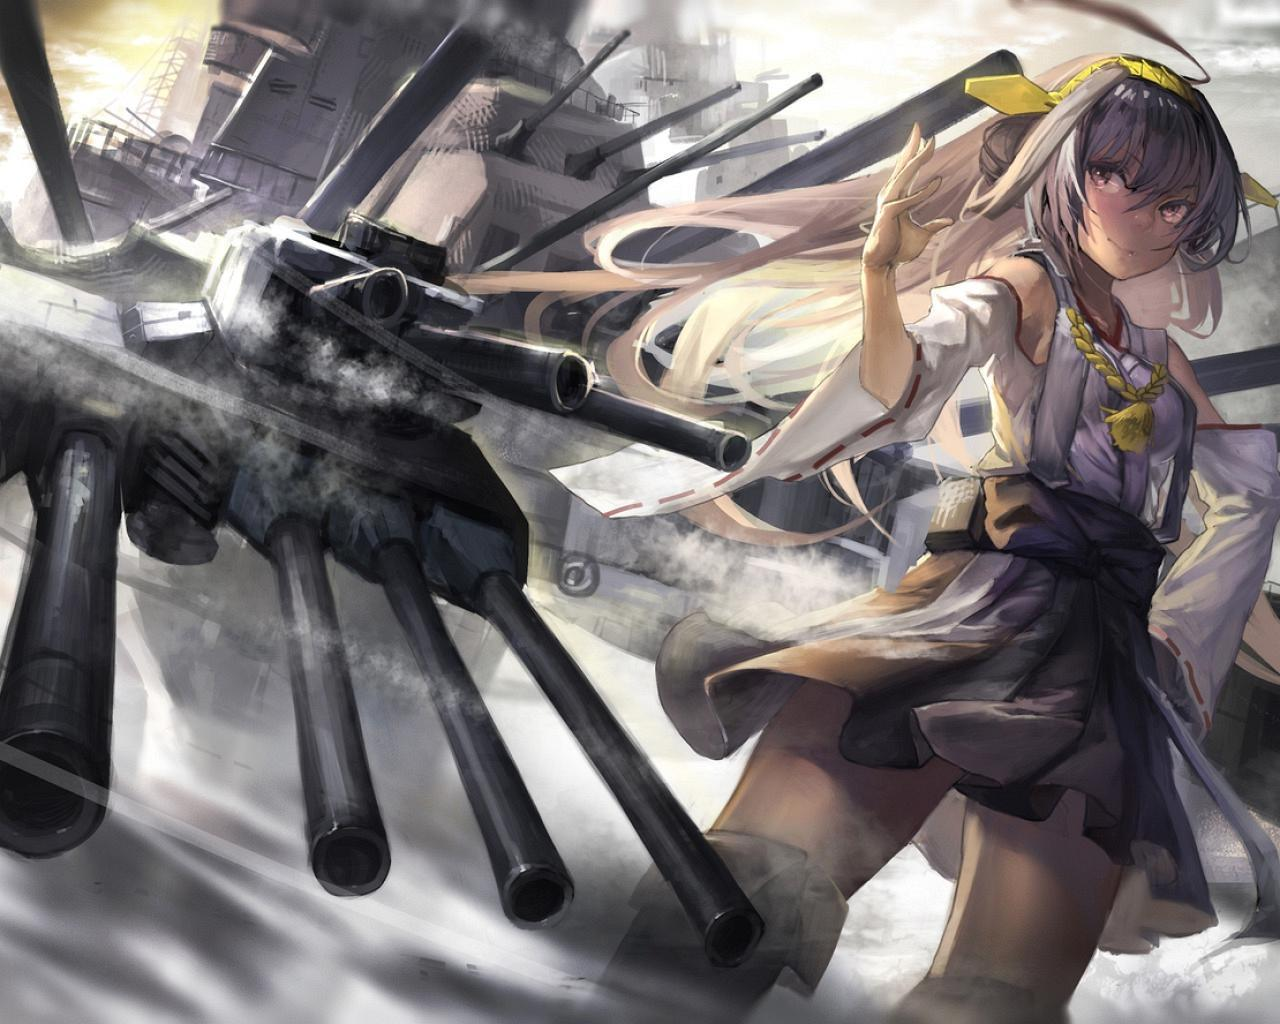 Wallpaper War Girl Anime  Anime Manga Japan Cartoons